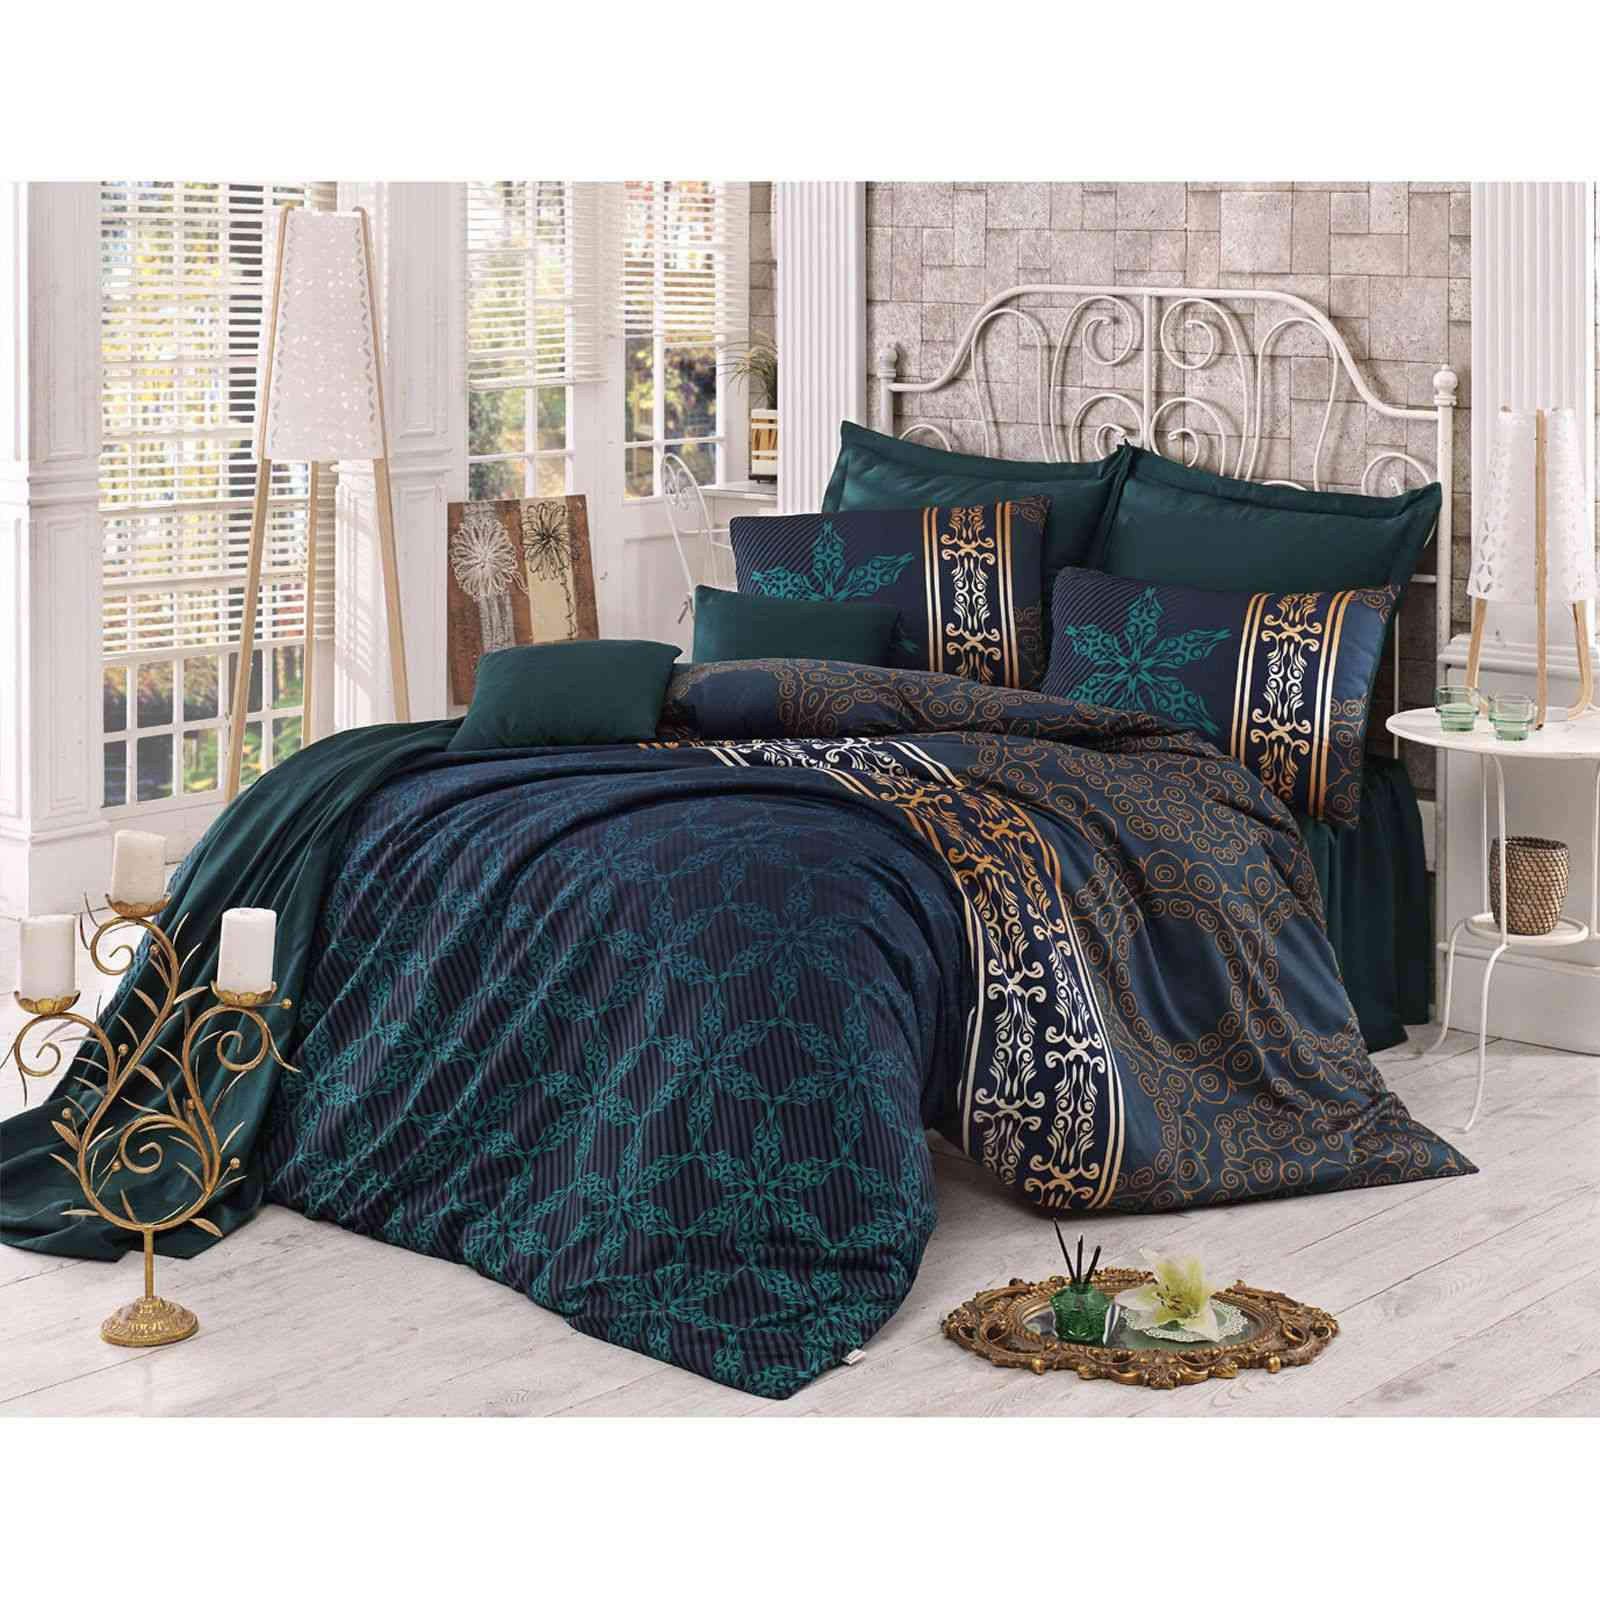 victoria home parure de lit en satin de coton 220x240 vert brandalley. Black Bedroom Furniture Sets. Home Design Ideas